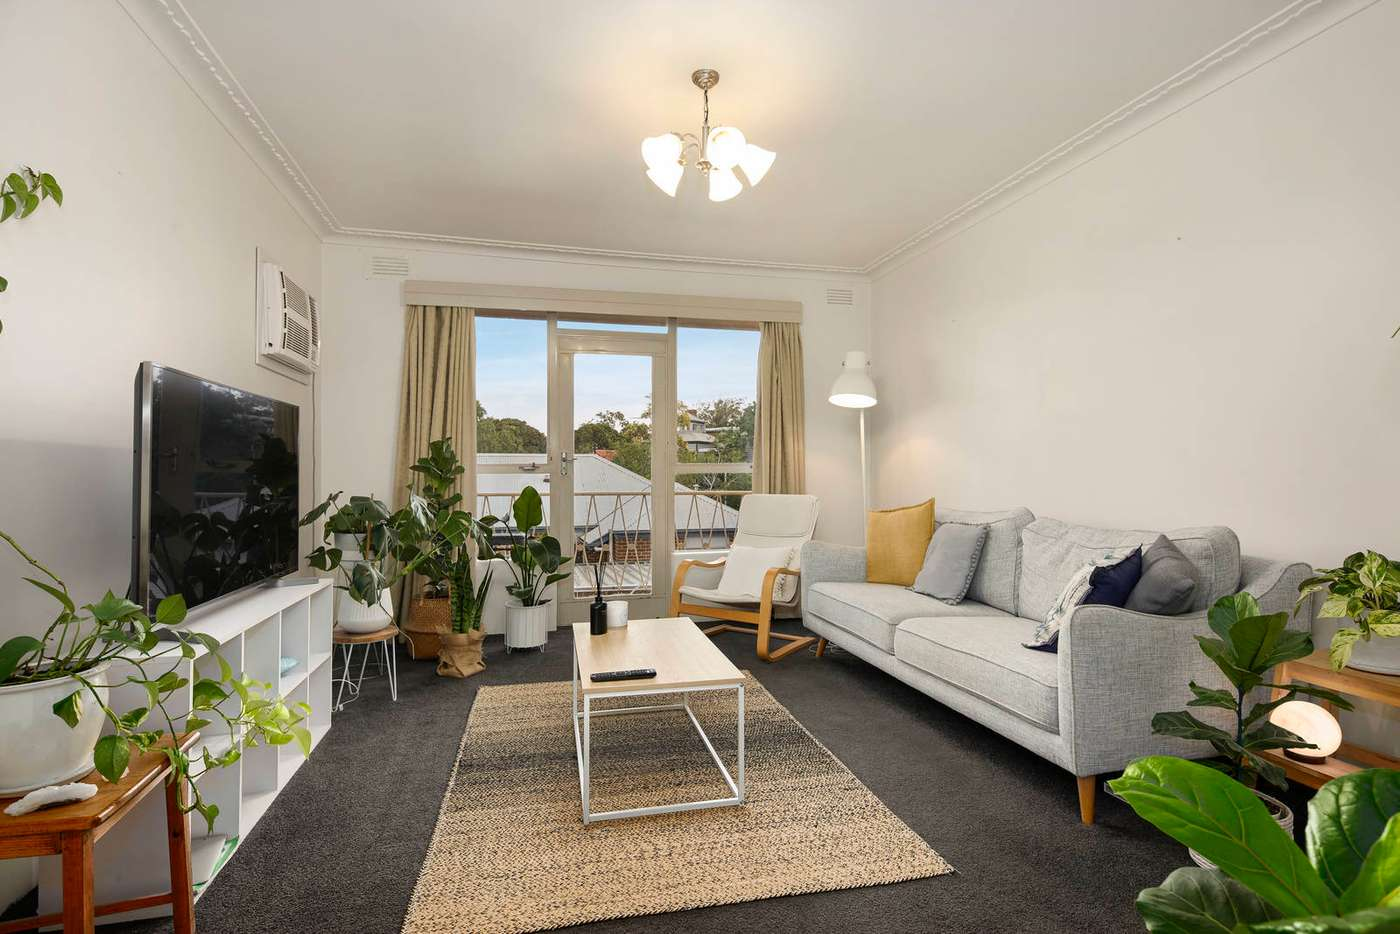 Main view of Homely apartment listing, 10/99 Verdon Street, Williamstown VIC 3016